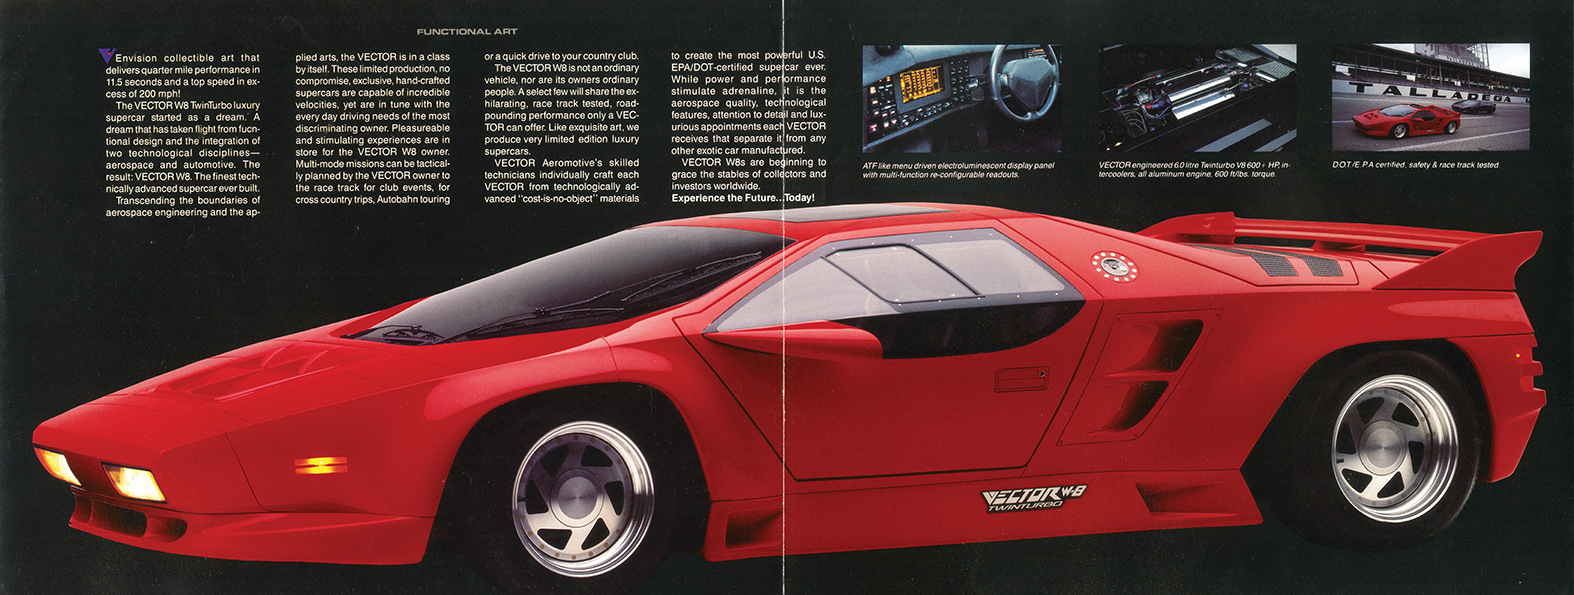 Once the W8 (top, left) was launched, Wiegert turned his attention to his next generation of supercars, the Vector Avtech WX3 coupe and roadster, starring at the 1993 Geneva show.